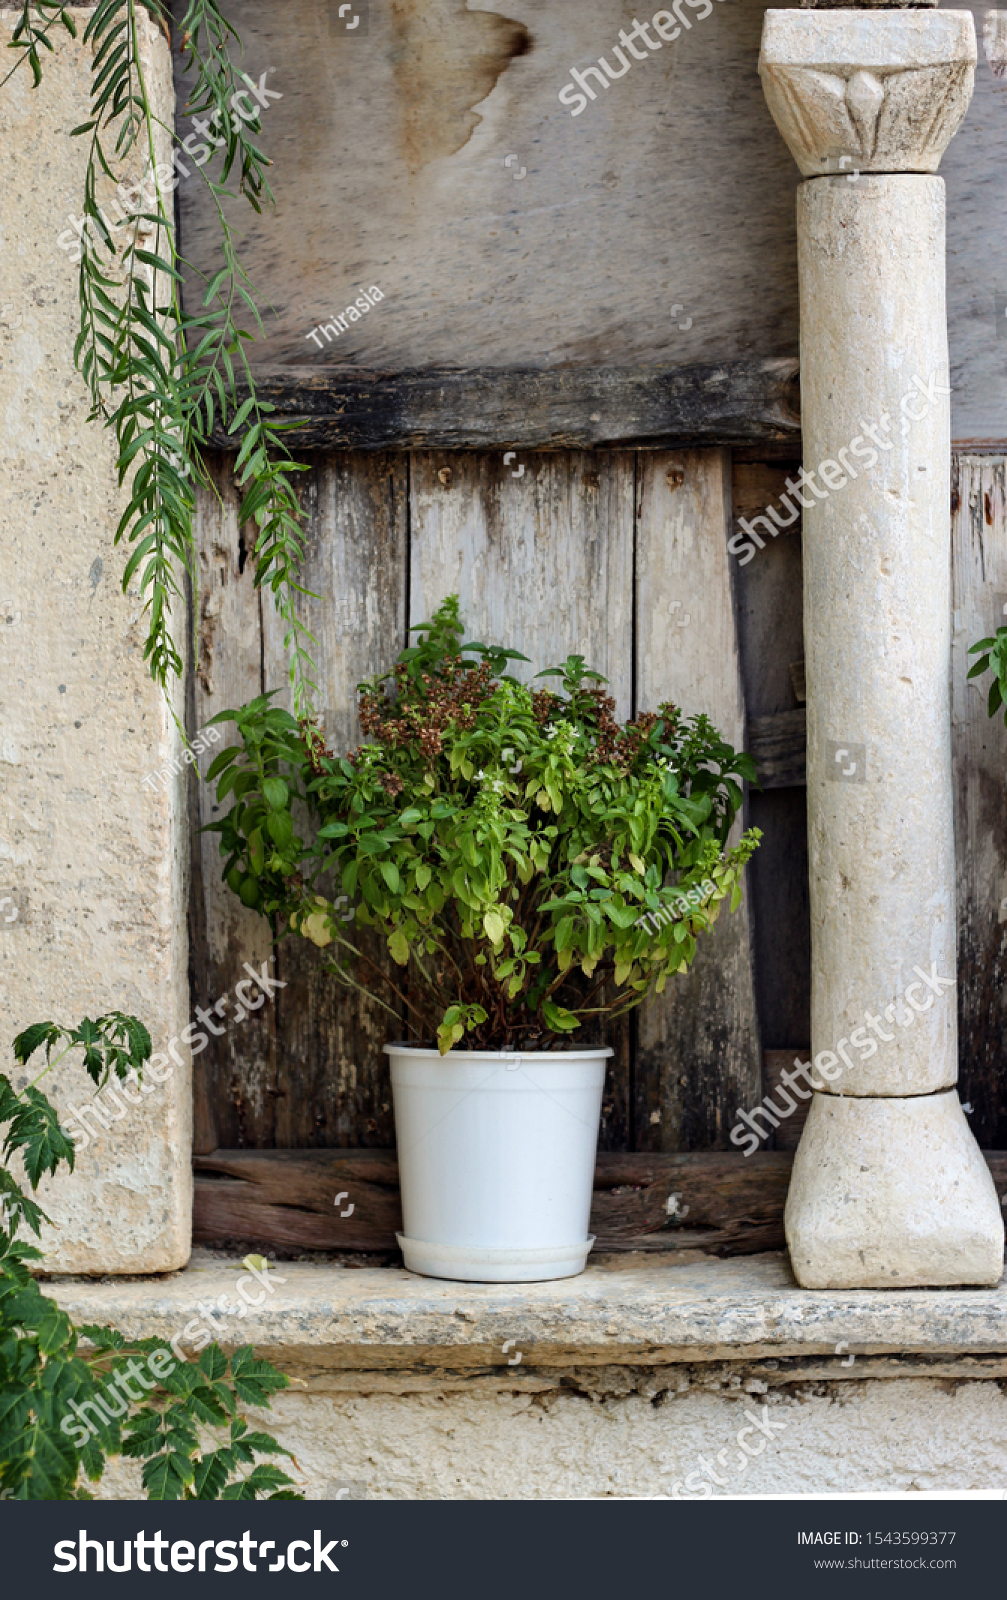 Greece '- Folegandros island. Herbs growing on a window cill at traditional taverna. The window - alcove is part of an old church. Picture may illustrate natural ingredients and a picturesque setting. #1543599377